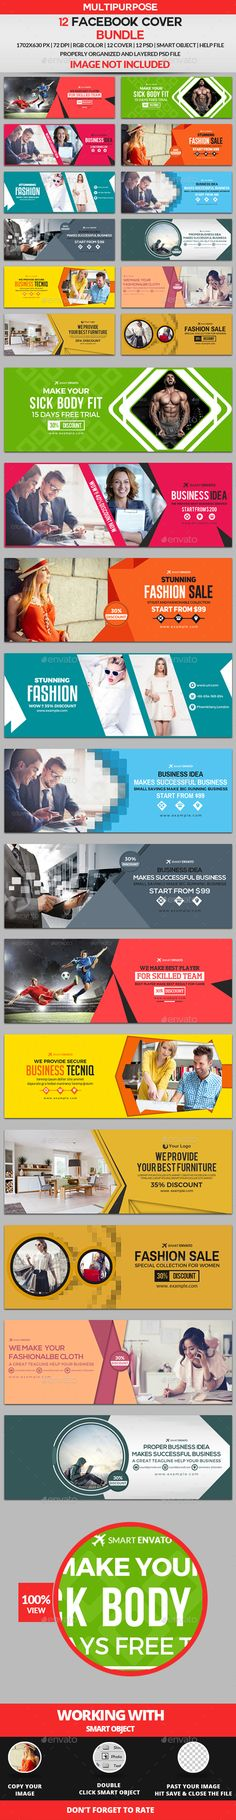 There's a fine line in between a professional-looking advertisement and a fast-selling advertisement. Online banners can not be dealt with like a publ. Facebook Cover Design, Facebook Cover Template, Facebook Timeline Covers, Web Design, Web Banner Design, Flat Design, Colegio Ideas, Banner Design Inspiration, Banners